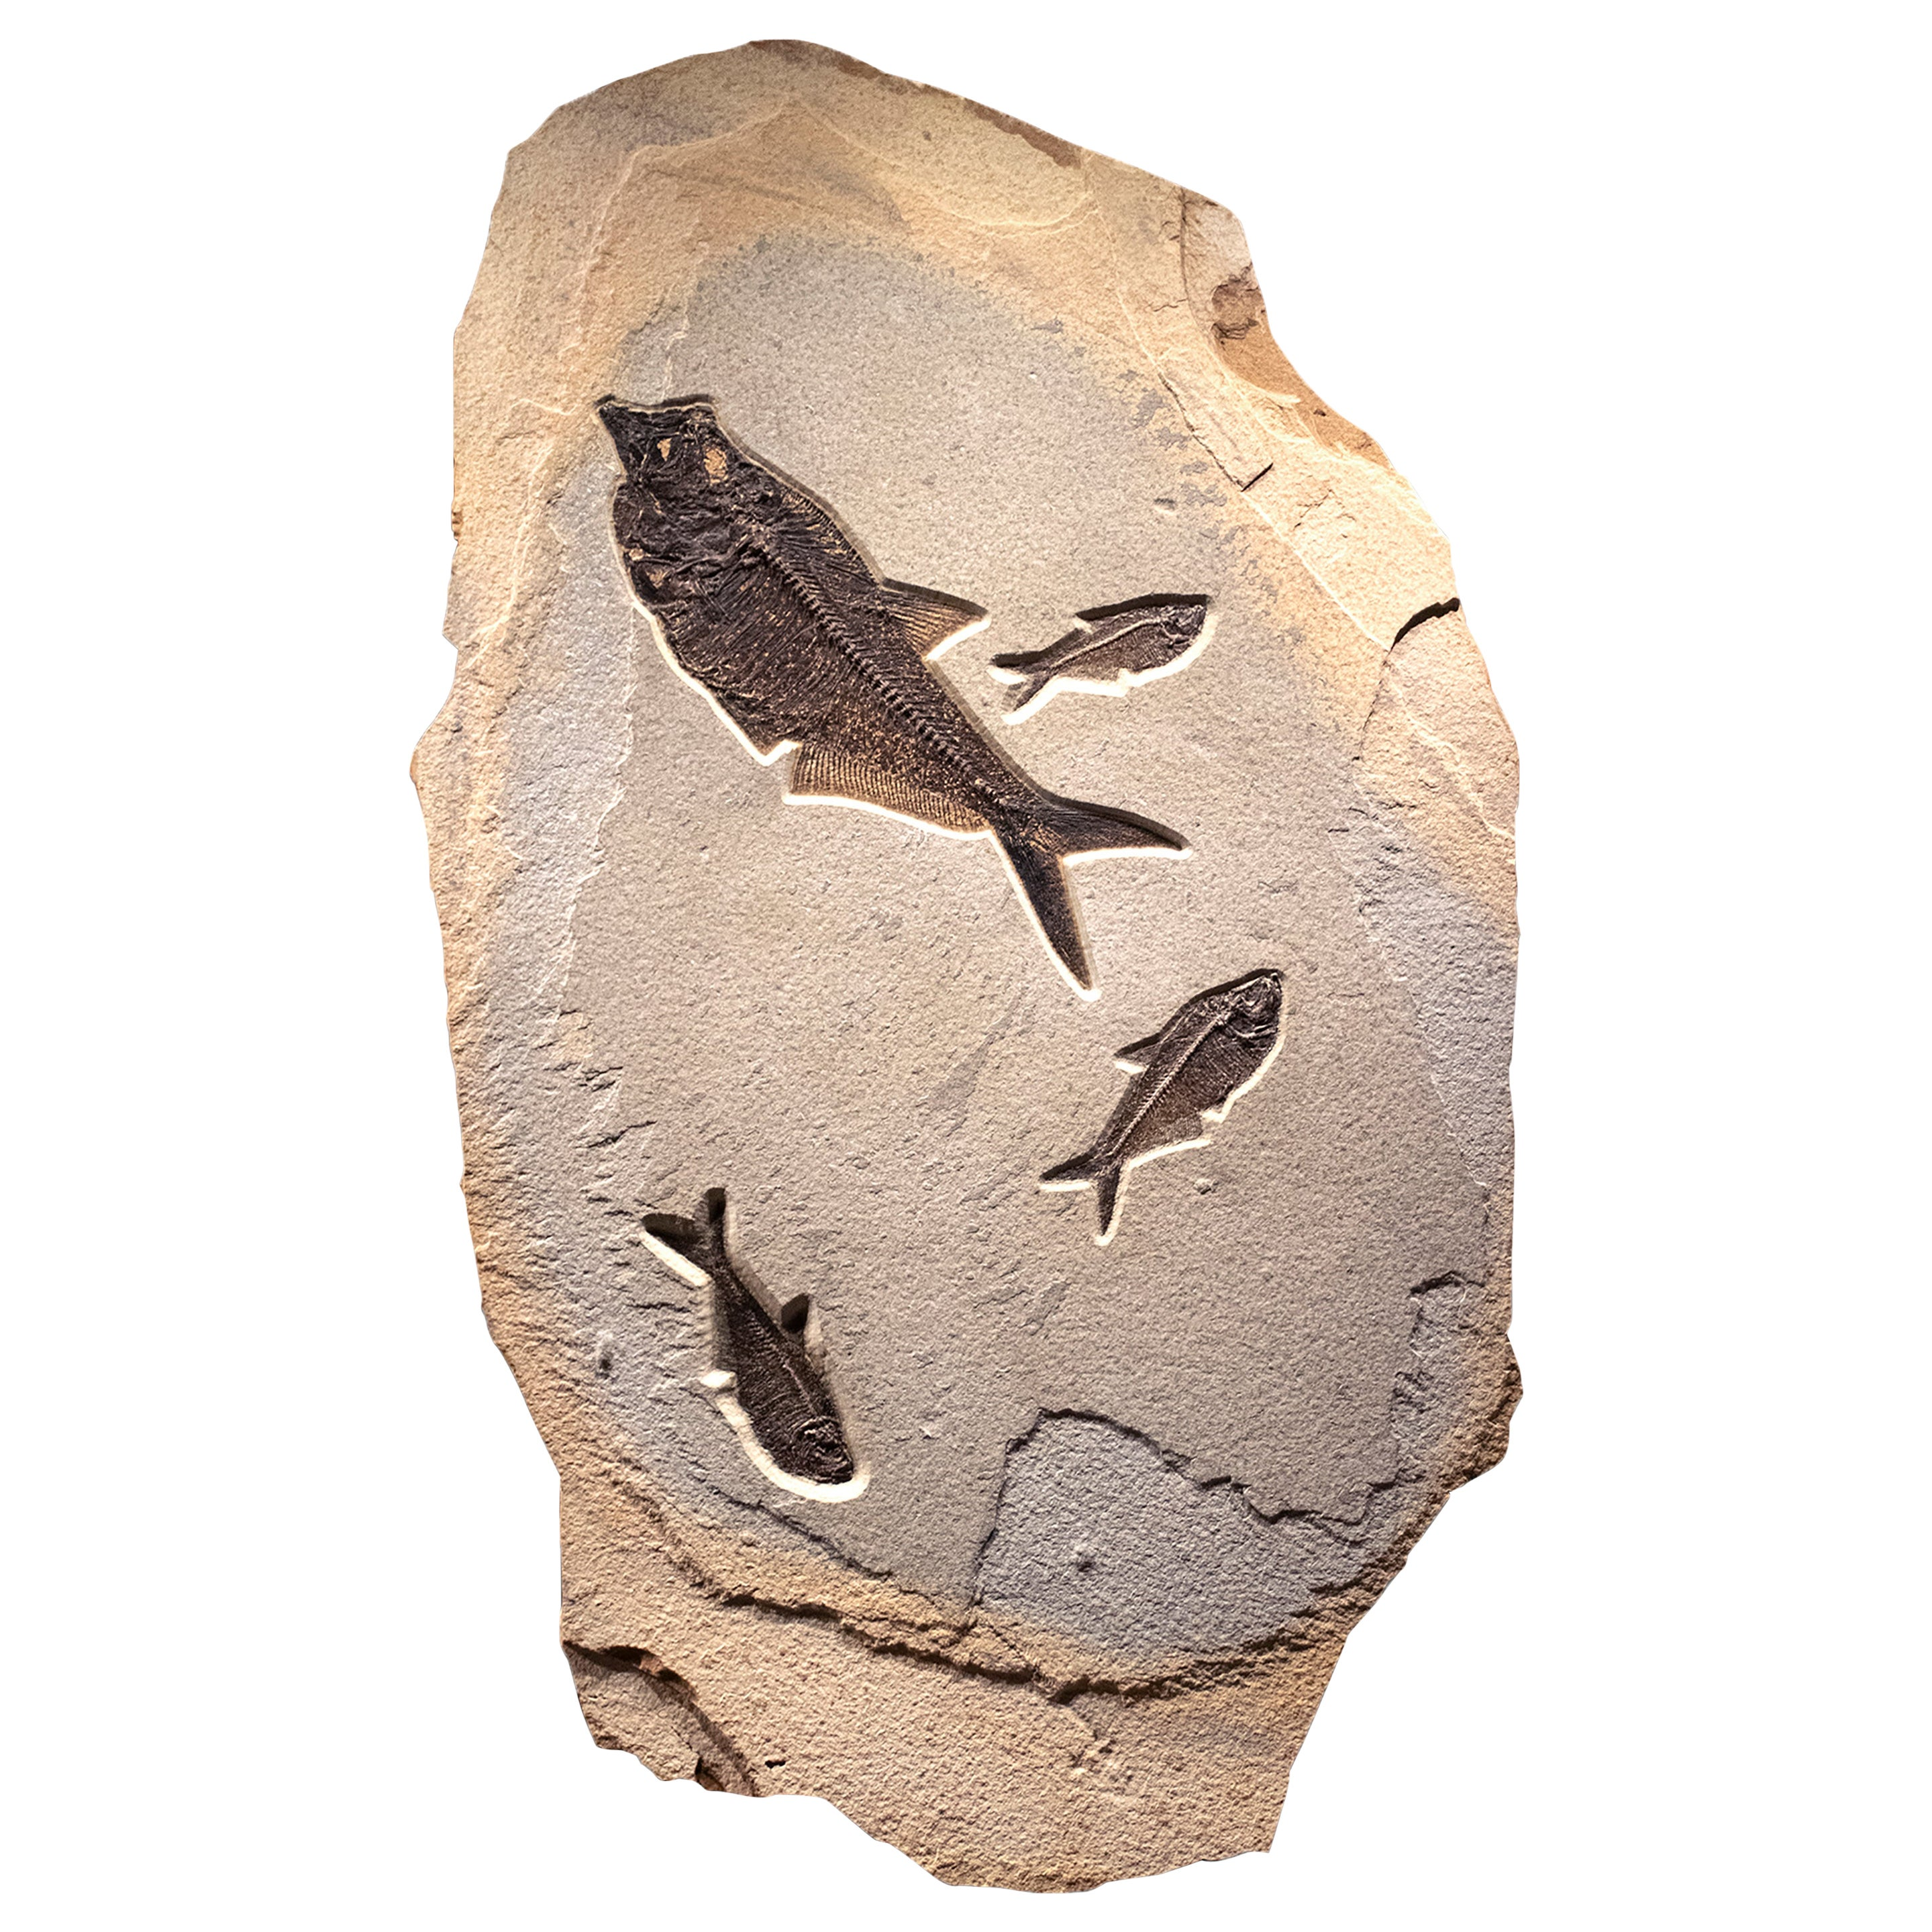 50 Million Year Old Eocene Era Fossil Fish Mural in Stone, from Wyoming